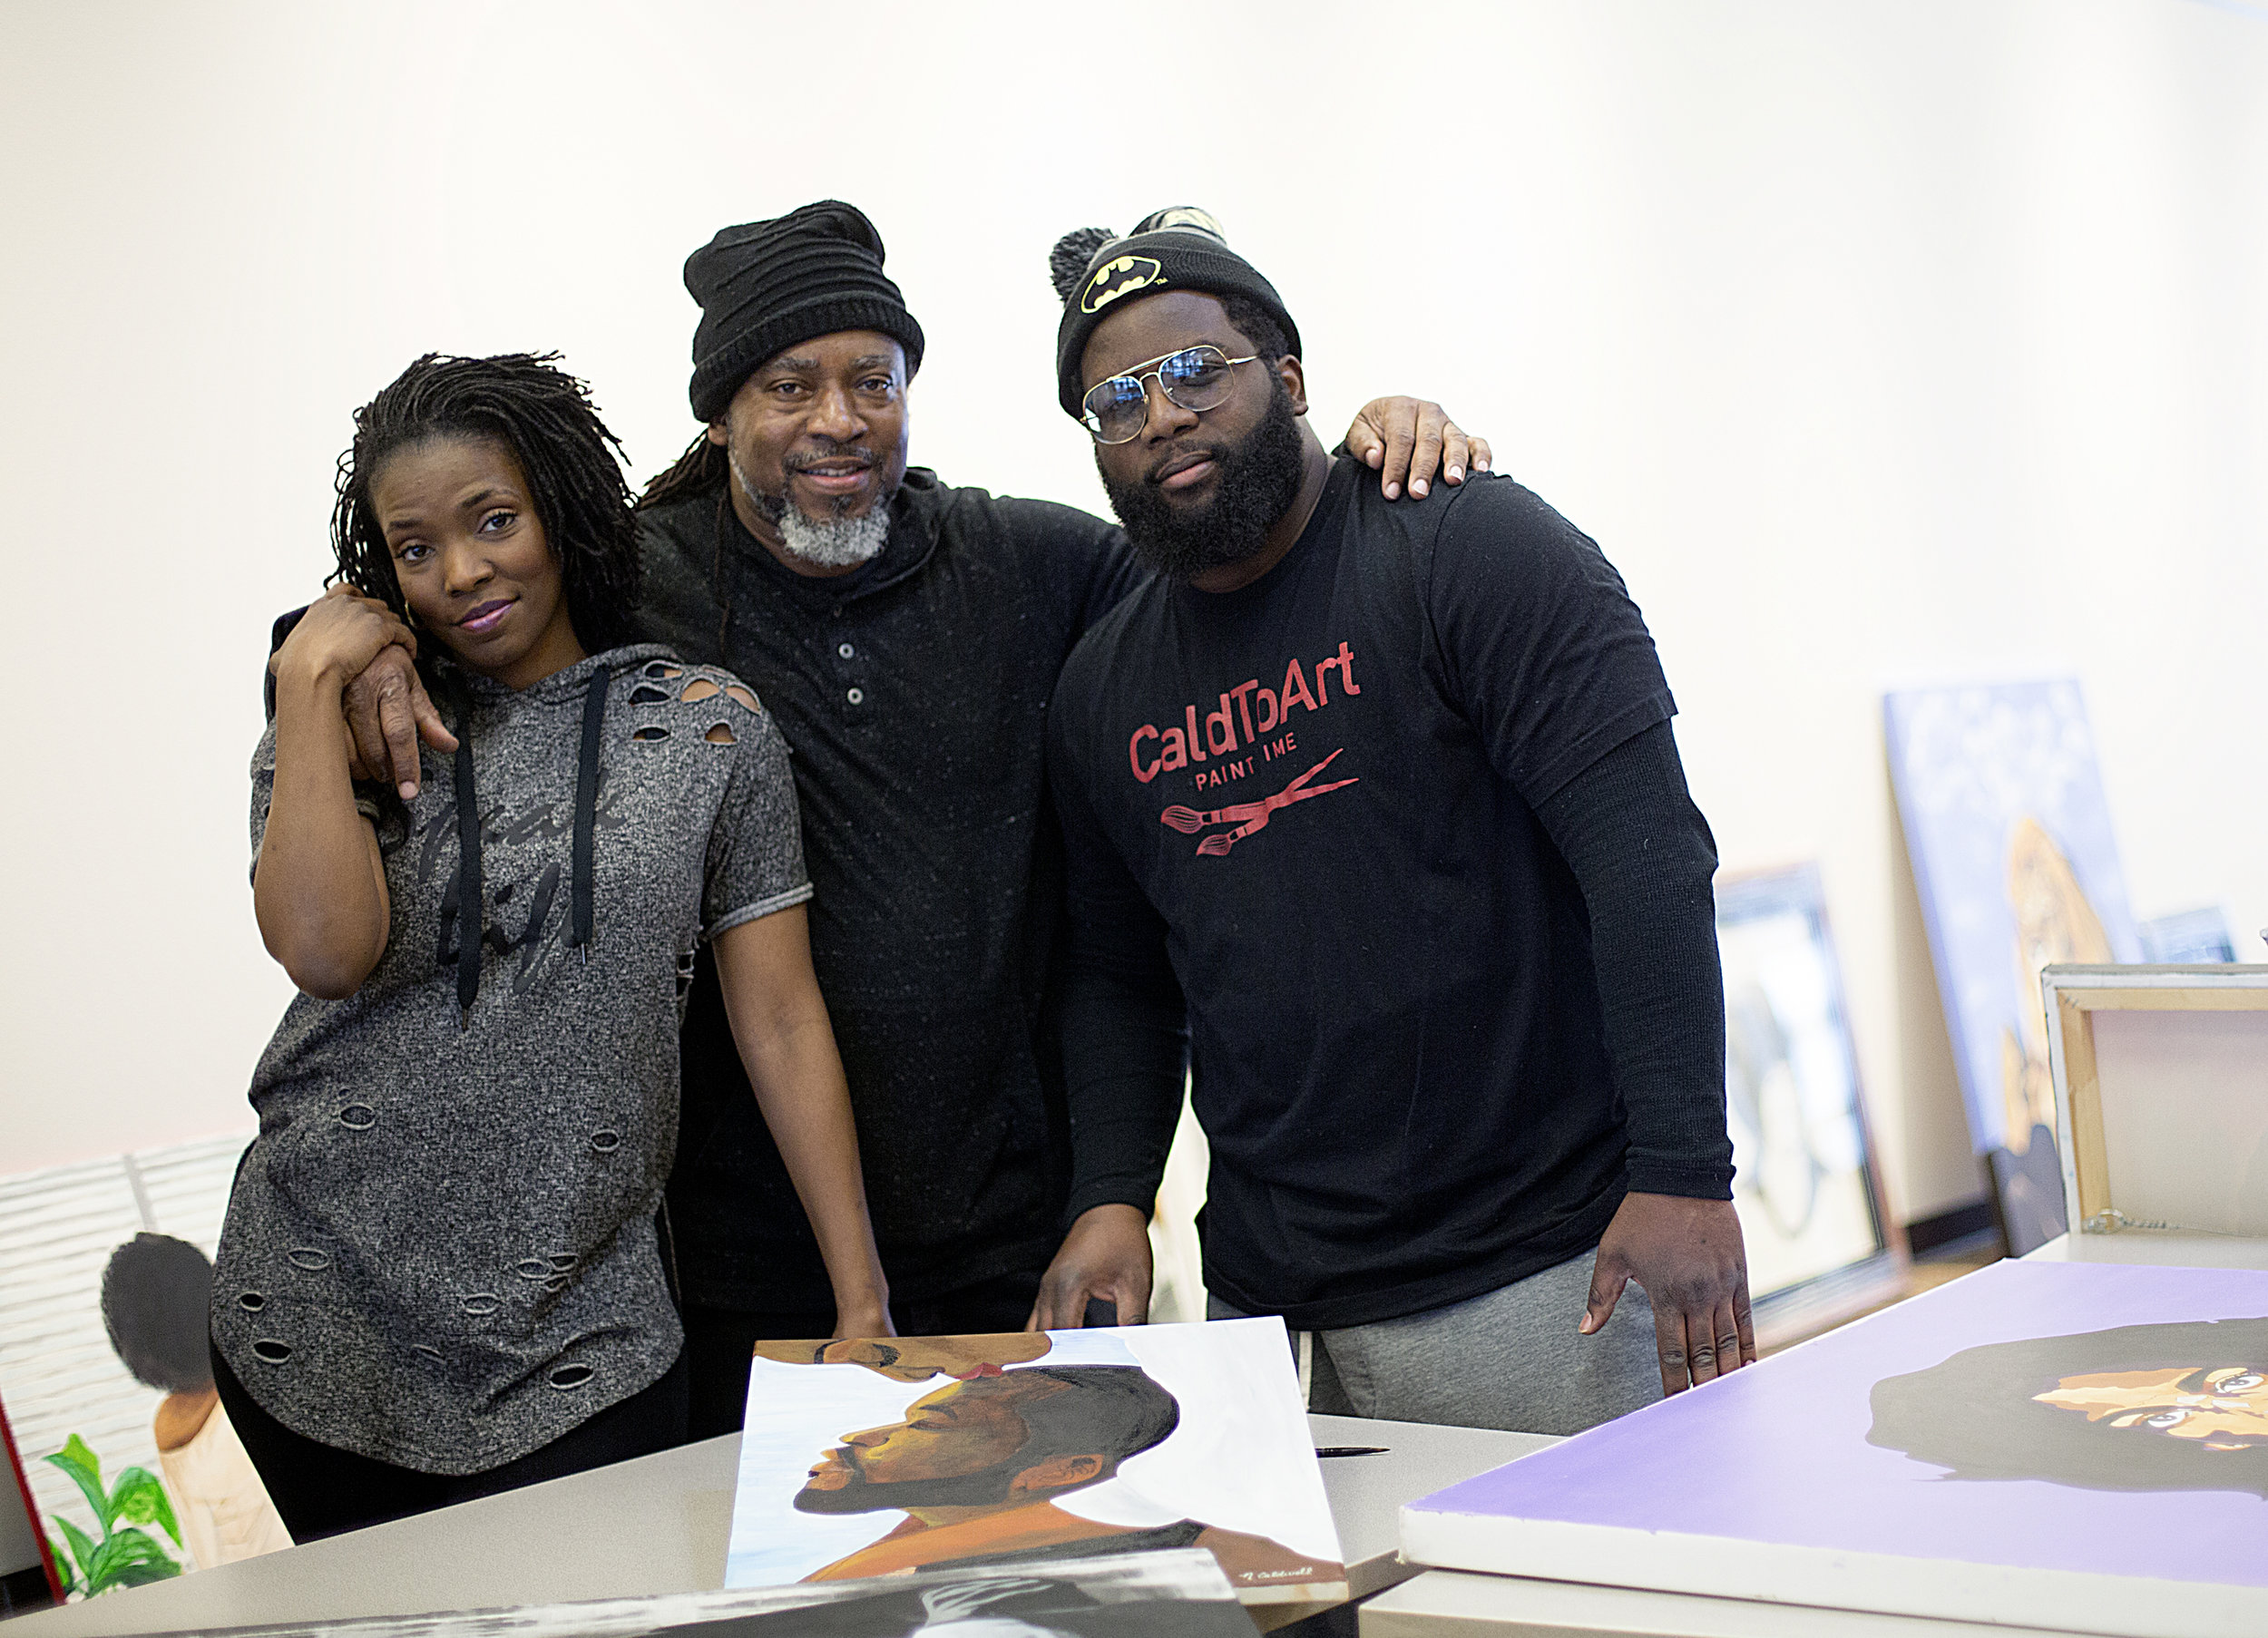 Charles Caldwell (center) and his children, Nakesha (left) and Kenneth (right) pose amidst their paintings as they hung their Black History Month art show at UROC.